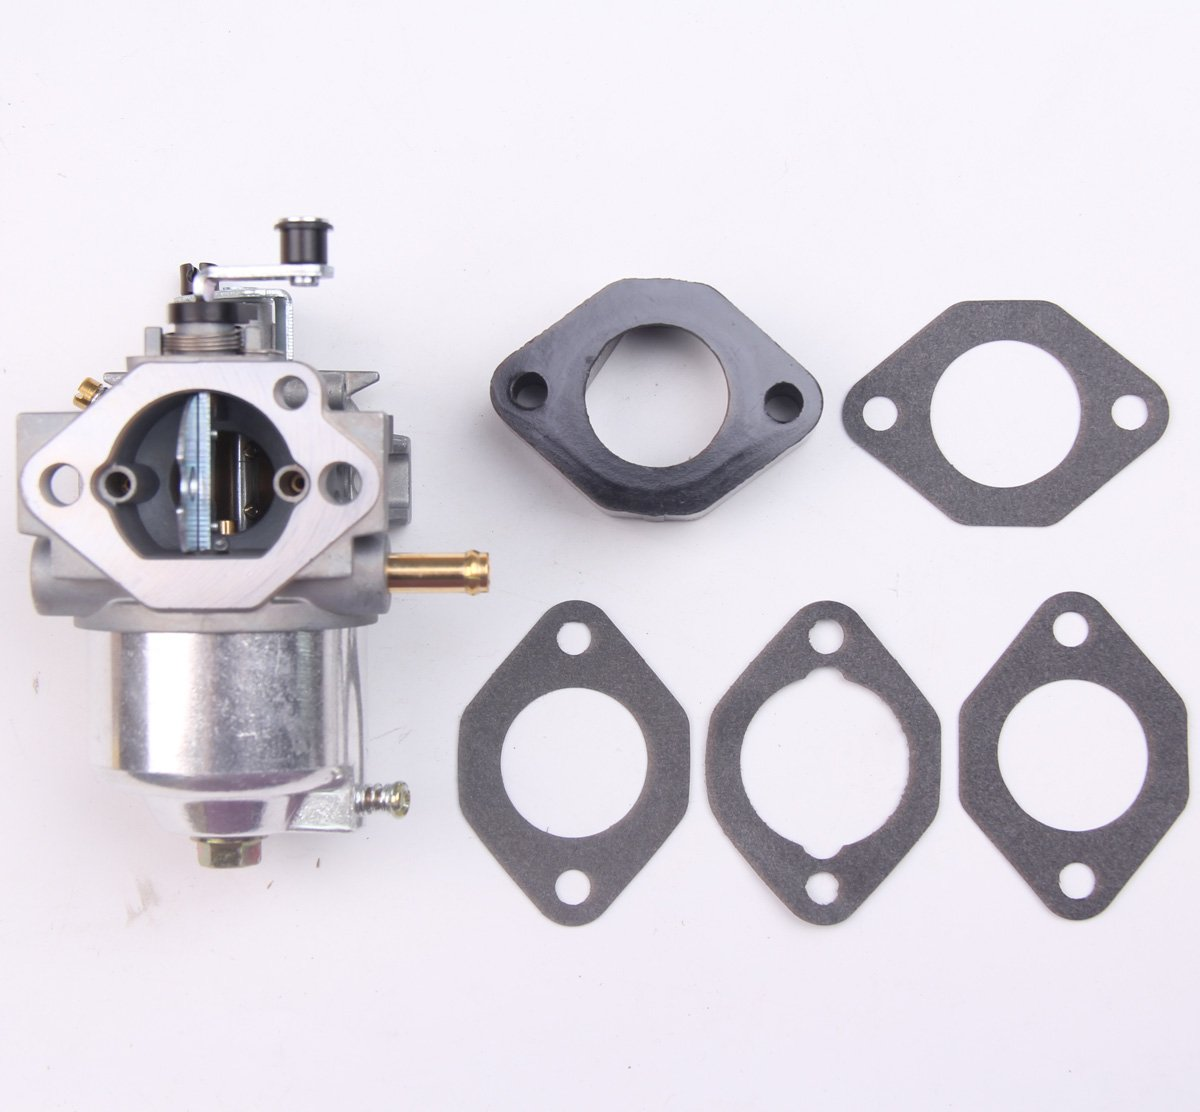 Goodbest New Carburetor GASKETS Replace for Briggs & Stratton 491912 Lawn Garden Mower Engine Carb